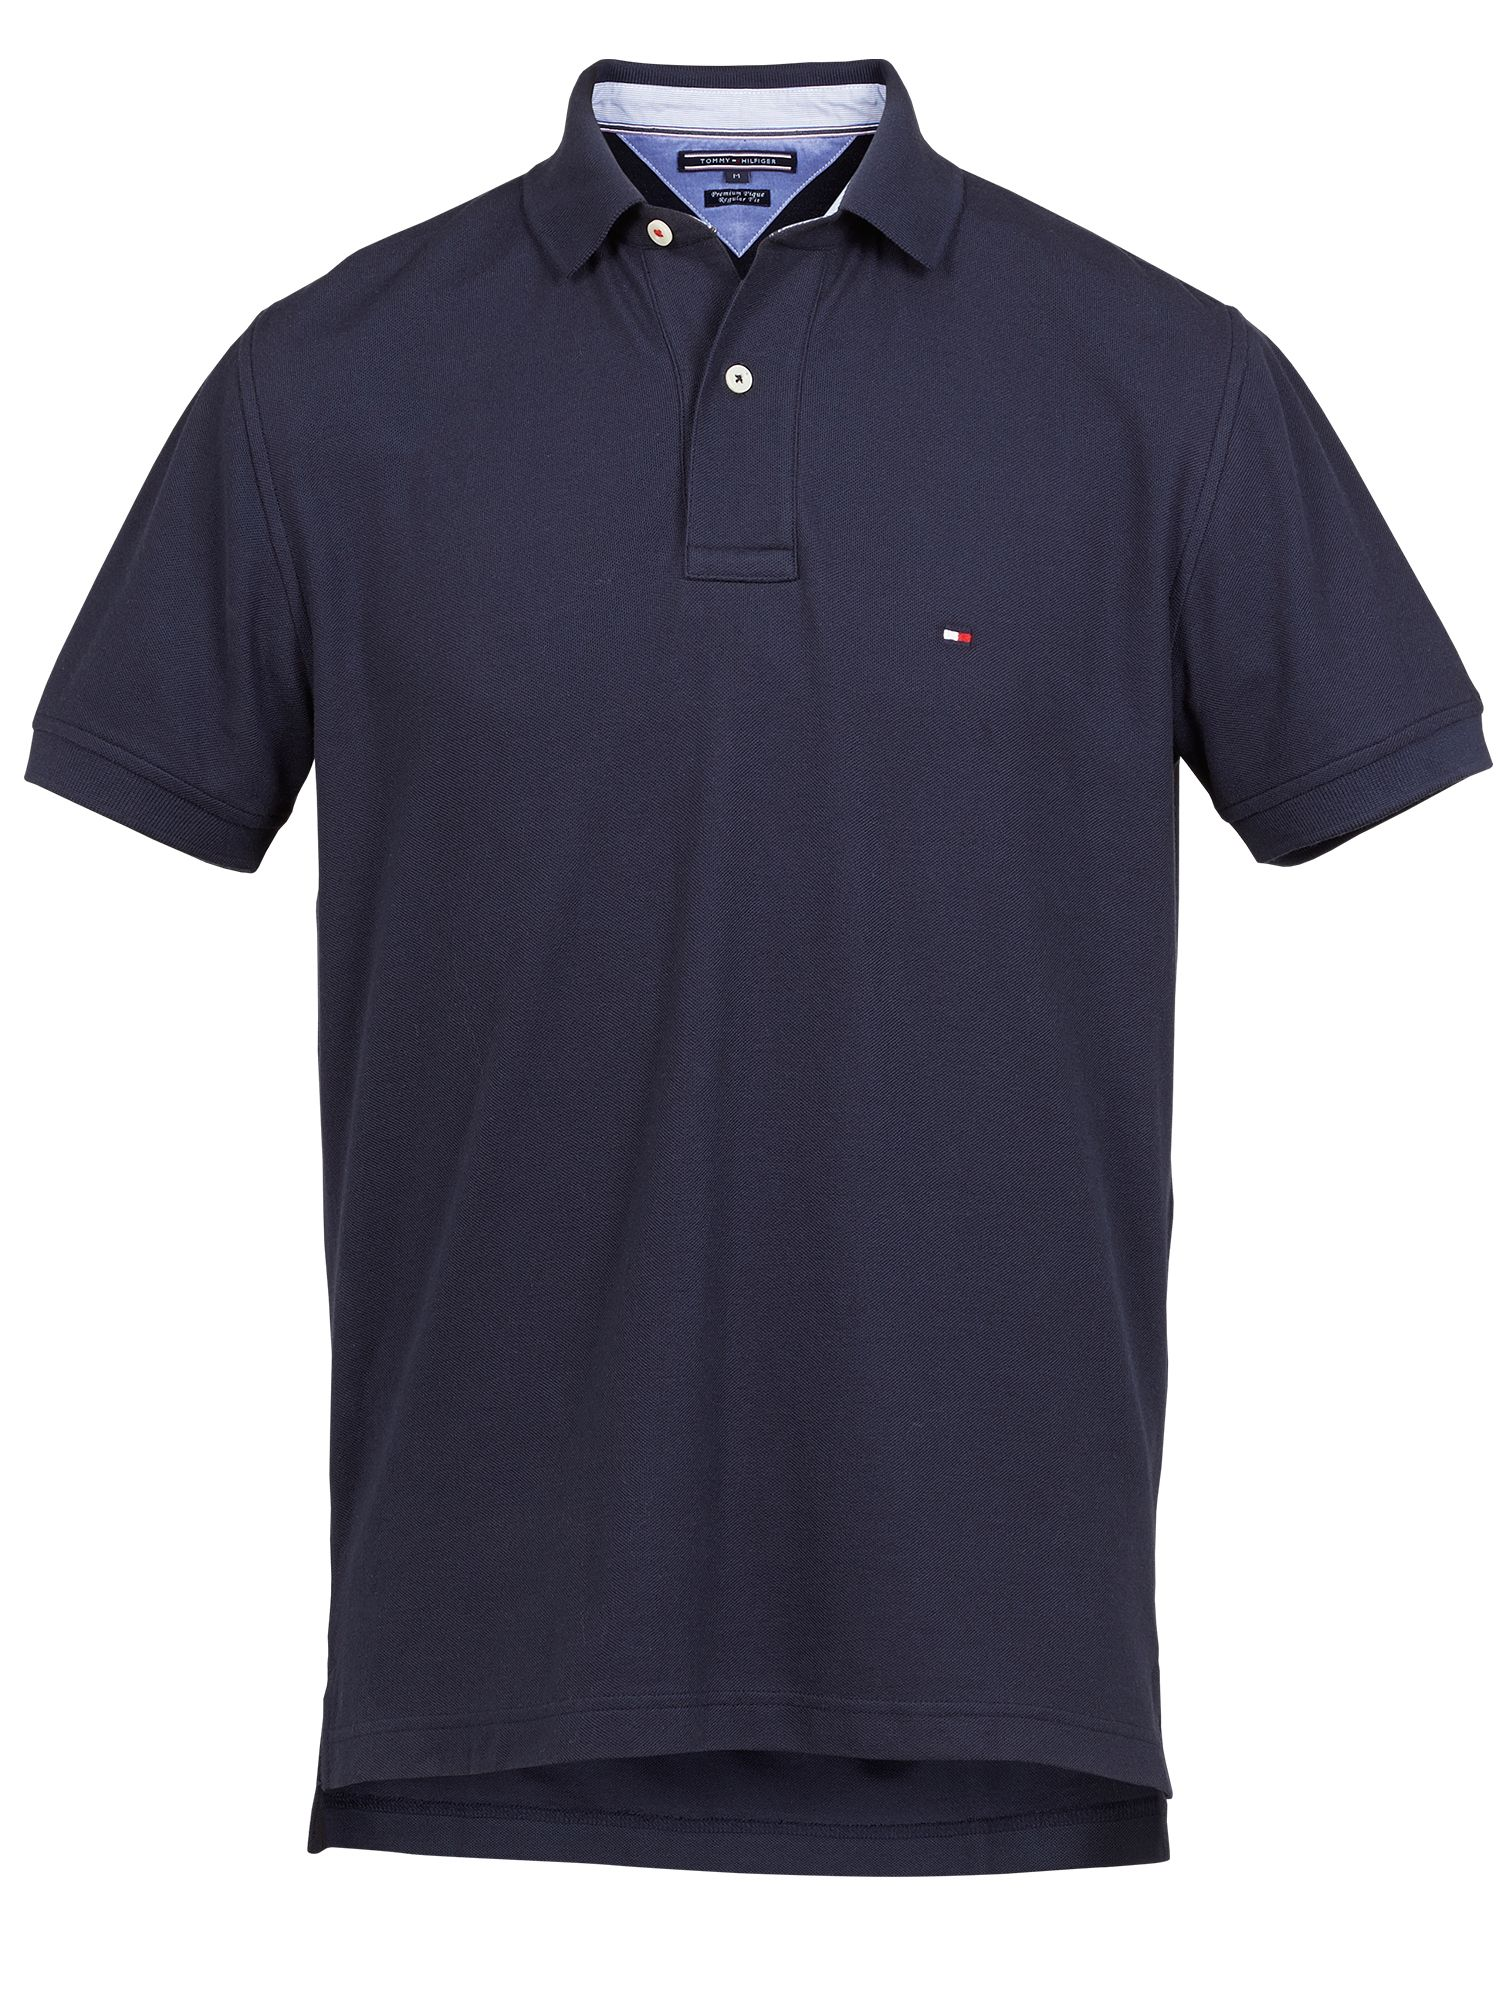 Men's Tommy Hilfiger Performance Polo Top, Blue